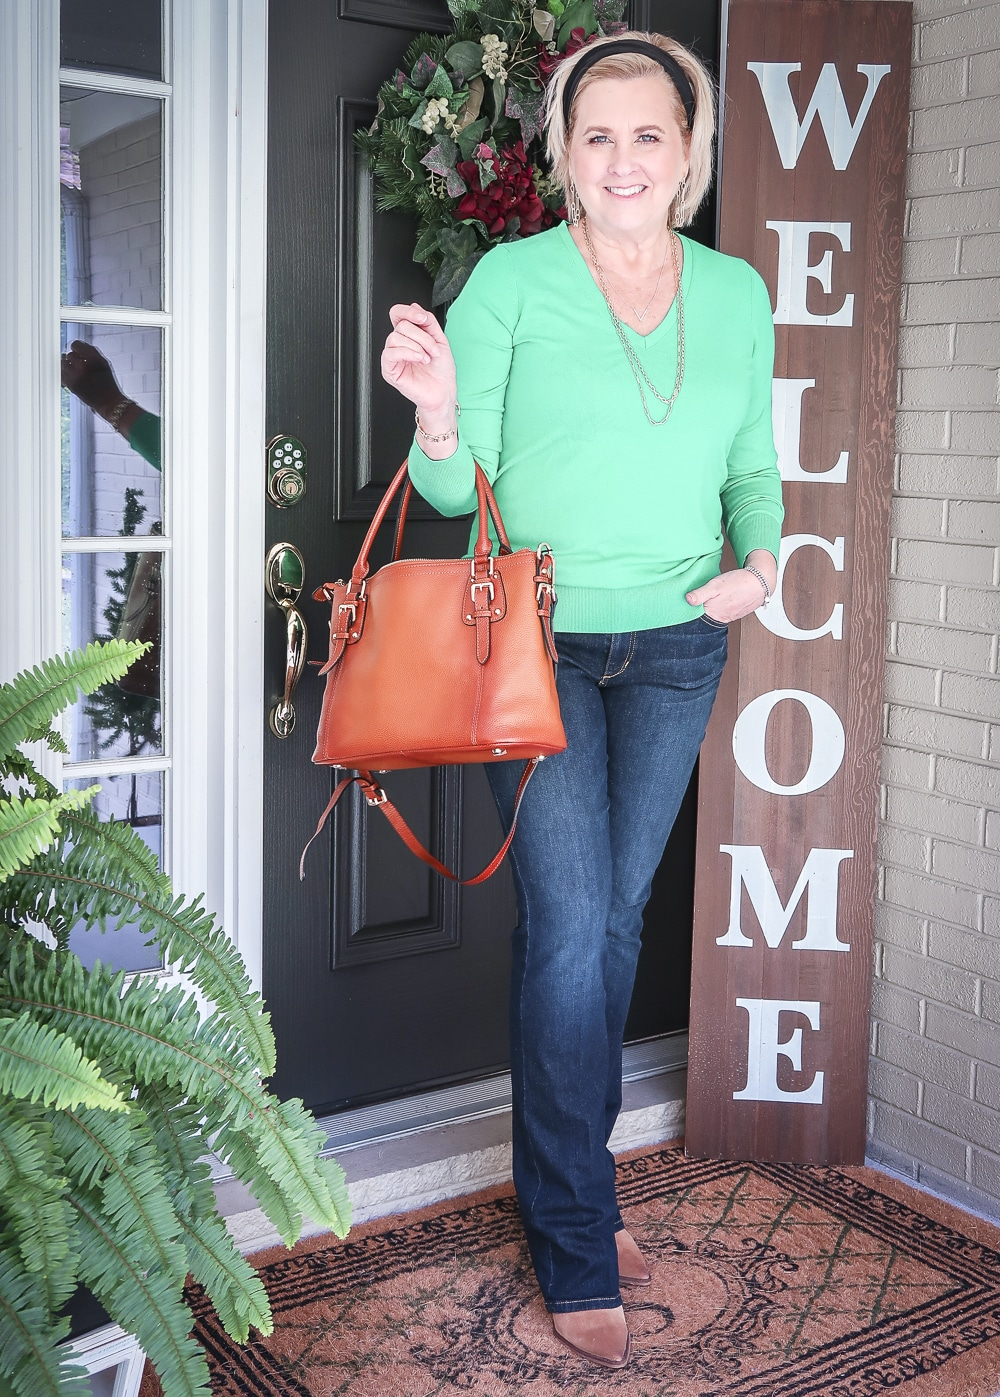 Fashion Blogger 50 Is Not Old is wearing a vibrant green sweater, bootcut jeans, ankle boots, and carrying a leather handbag for fall